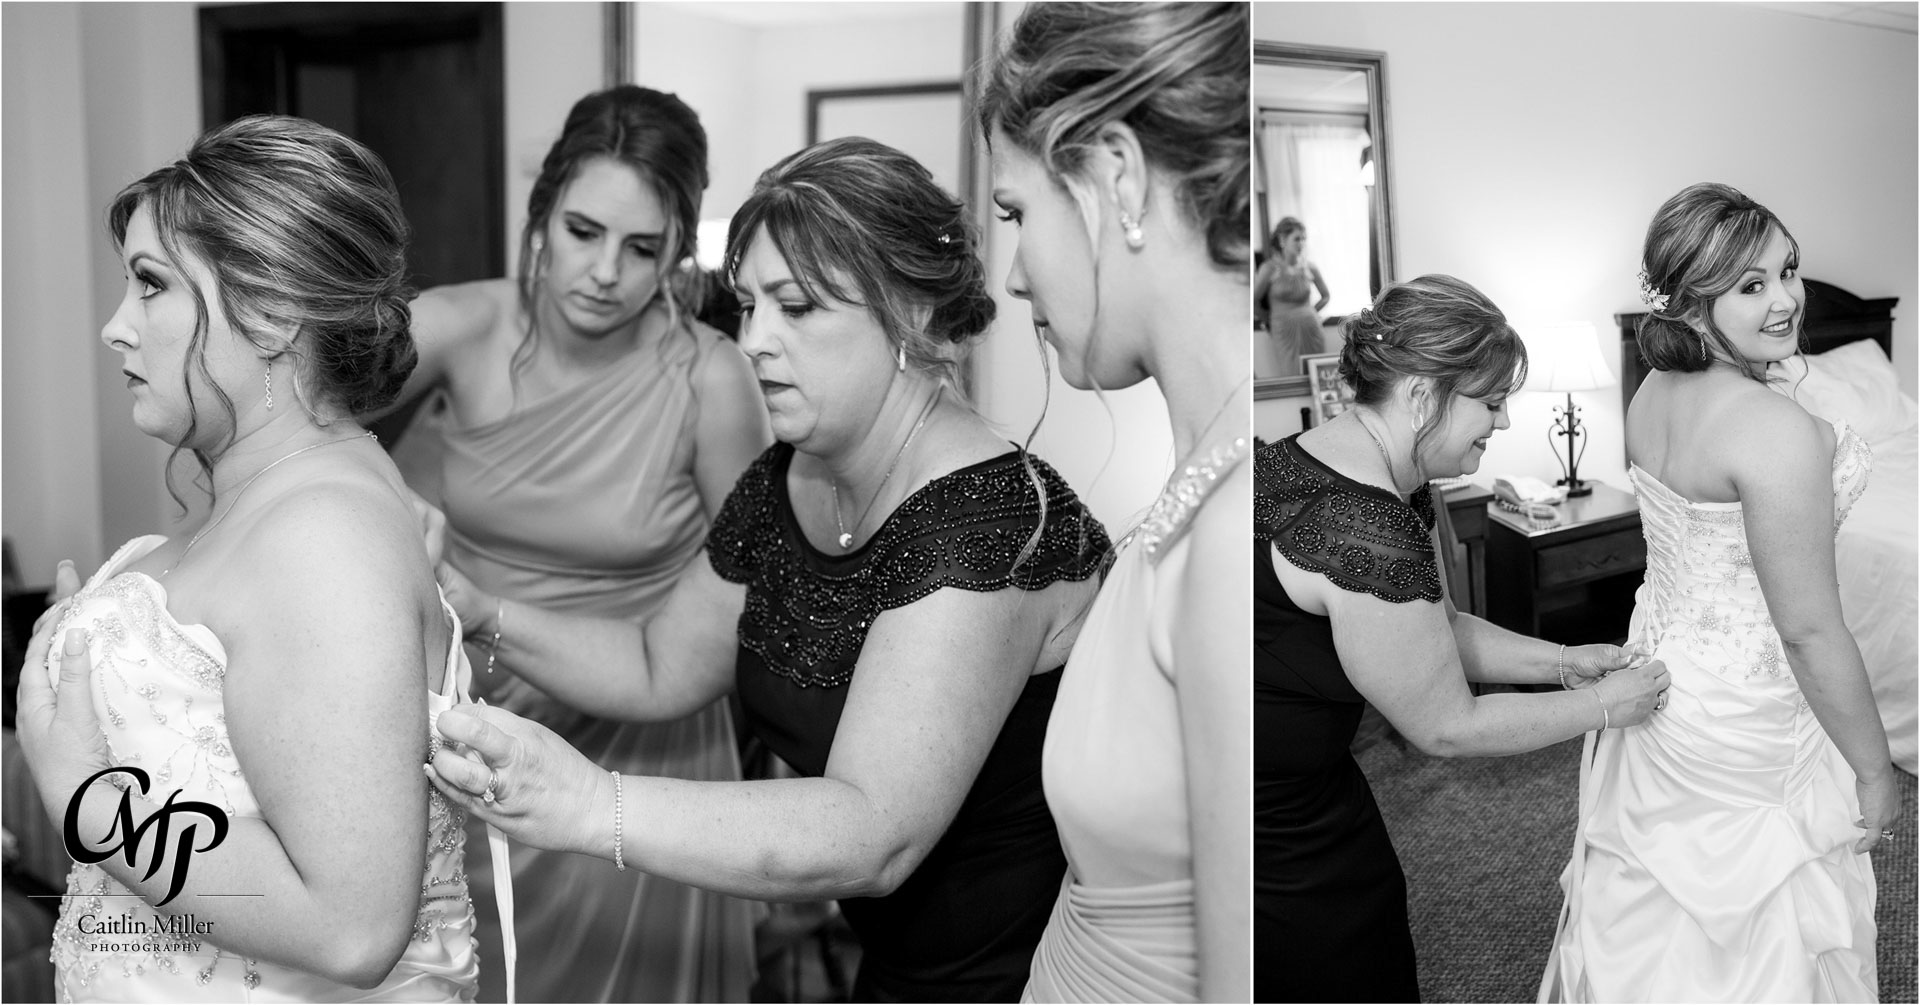 rega-6.jpg from Alicia and Desmond's Lake George wedding at Dunham's Bay Resort in Lake George, NY by Saratoga Wedding Photographer Caitlin Miller Photography. Lake George Wedding Photographer. Stamford wedding photographer. Albany wedding photographer. Greenwich Wedding Photographer. Saratoga Wedding Photographer